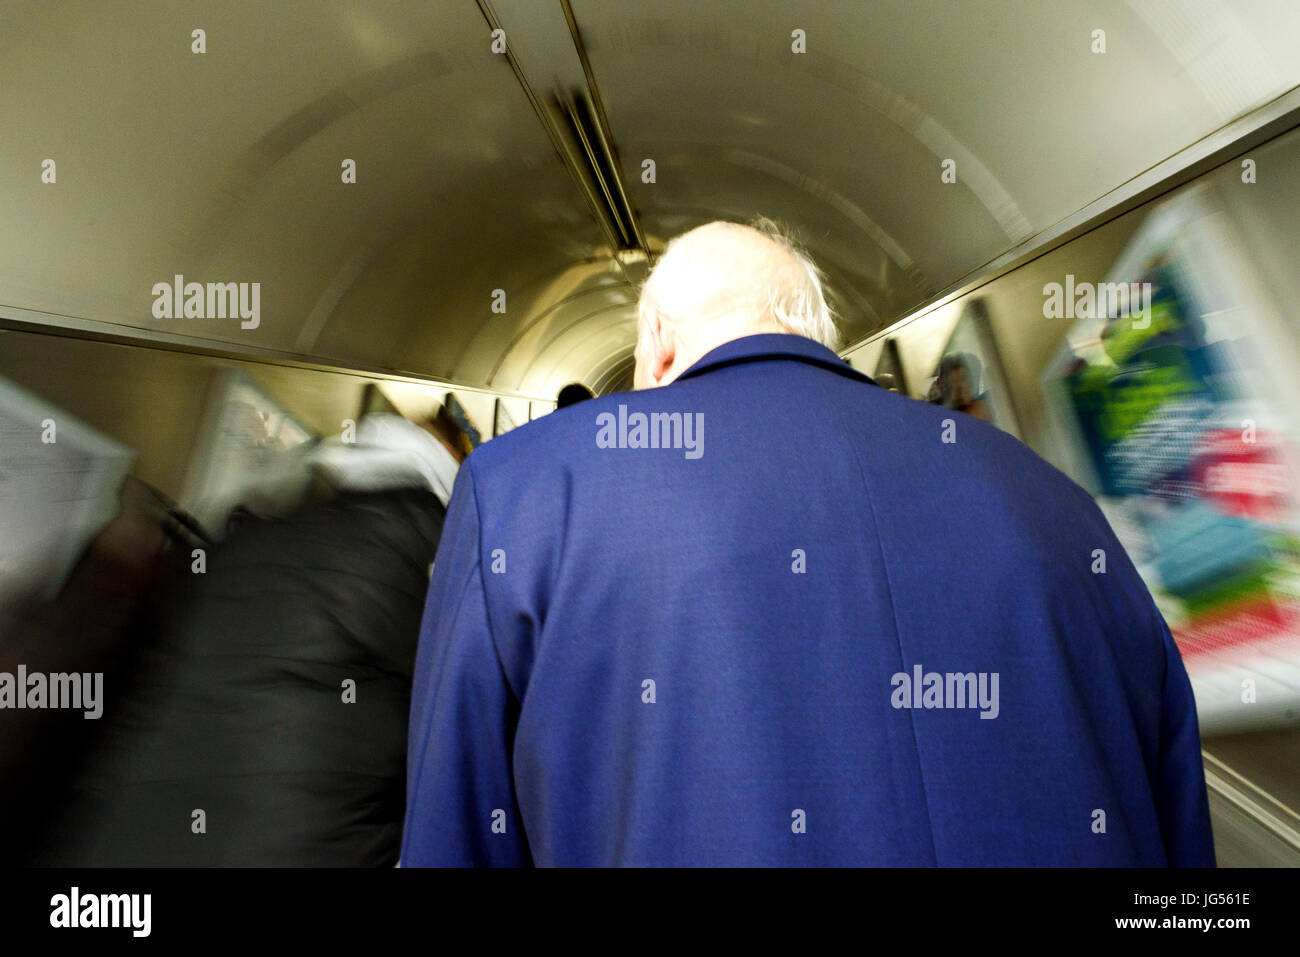 An old man with white hair and blue coat on a London underground escalator with motion blur - Stock Image